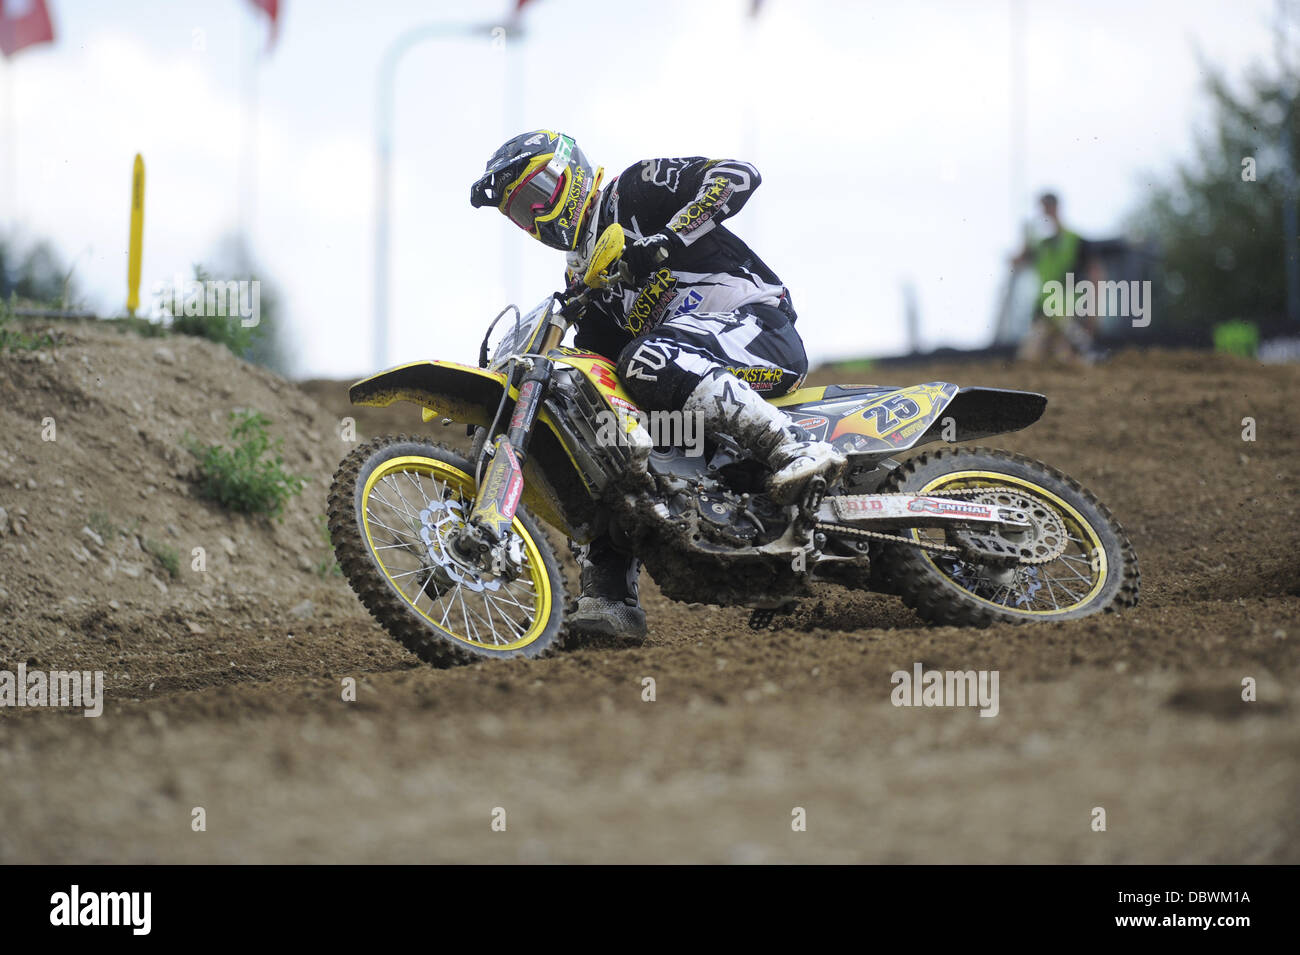 Loket, West Bohemia. 4th Aug, 2013. Motocross rider Clement Desale of Belgium on his way to first place in the race - Stock Image